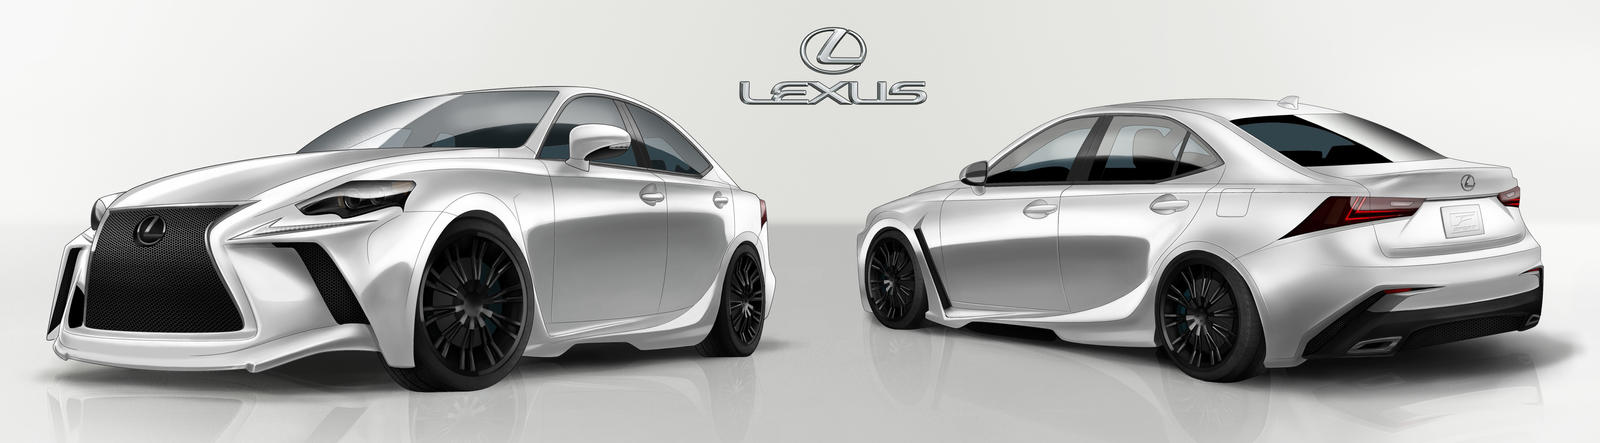 Lexus IS Design by AdamRoush